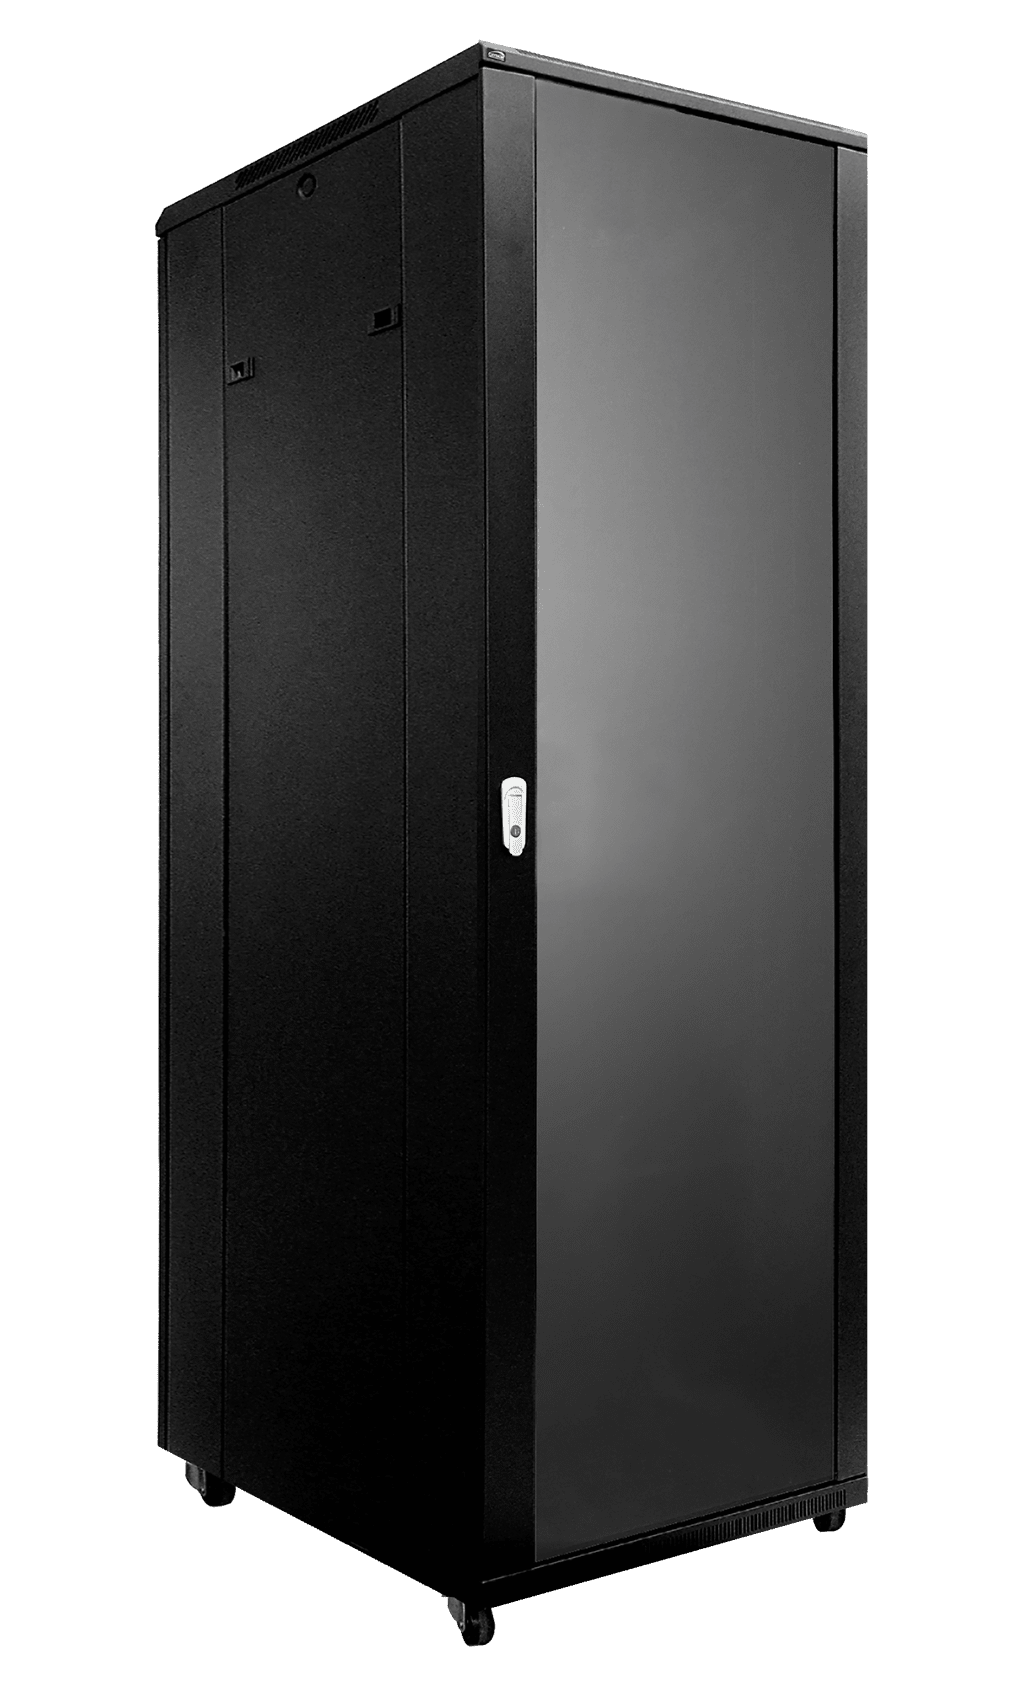 "SPR1042 - 19"" rack cabinet - 42 unit - 600mm W x 1000mm D"